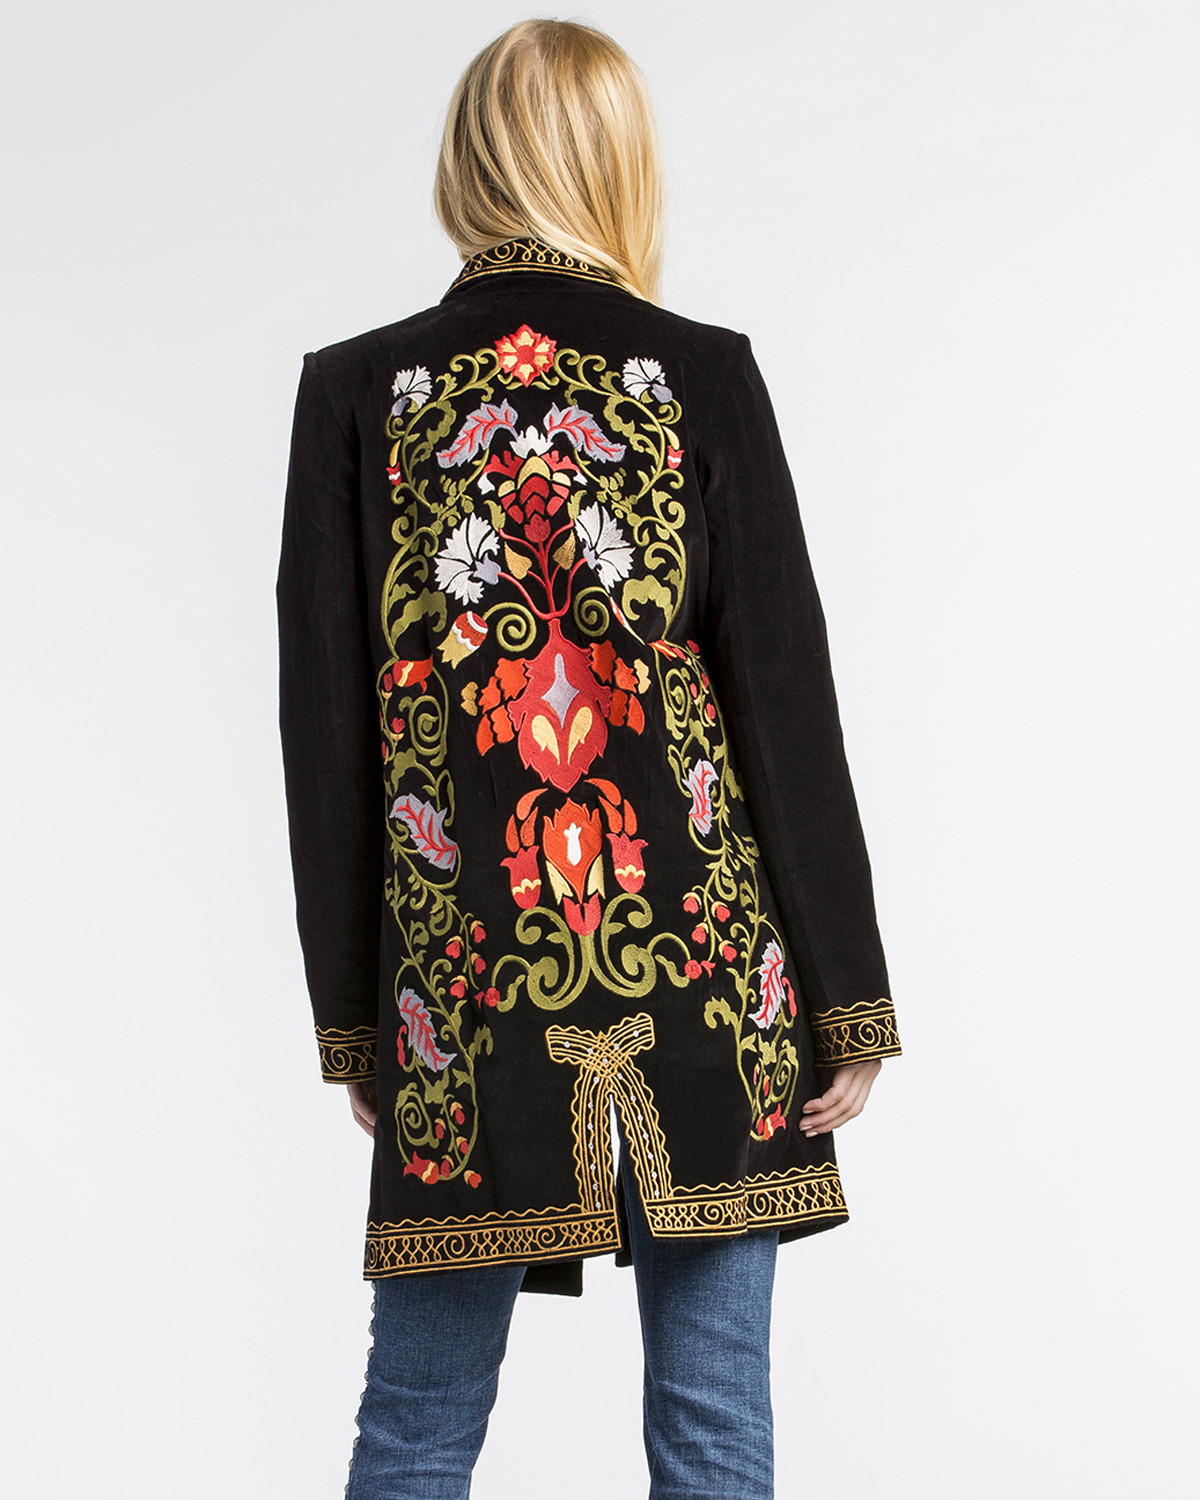 Mm vintage women s black electric lady embroidered blazer